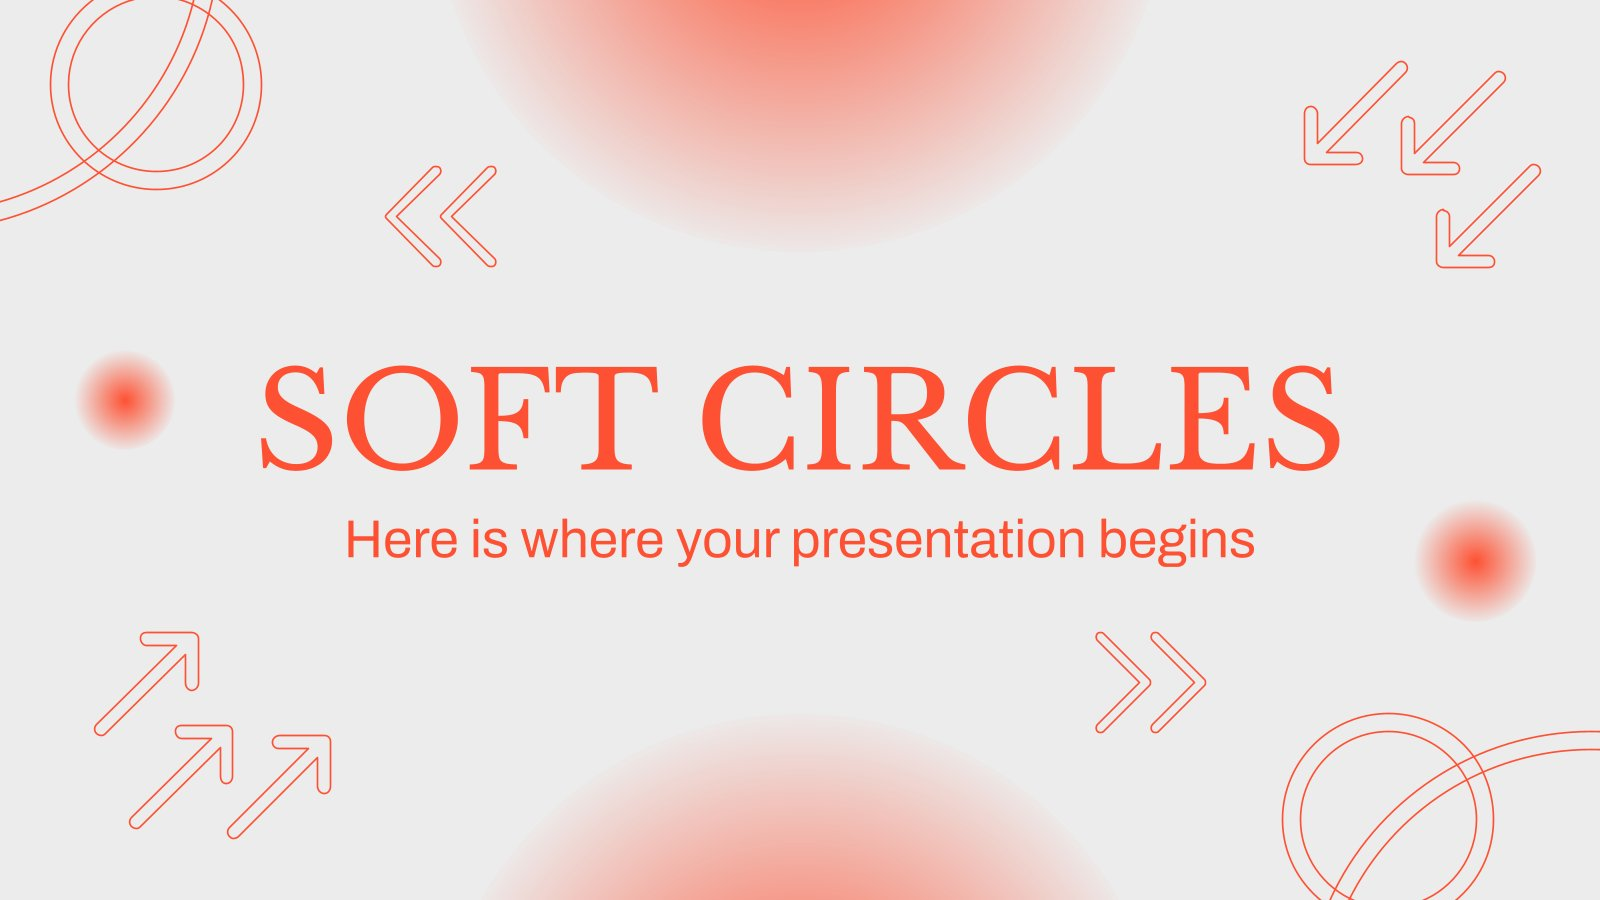 Soft Circles Company Profile presentation template